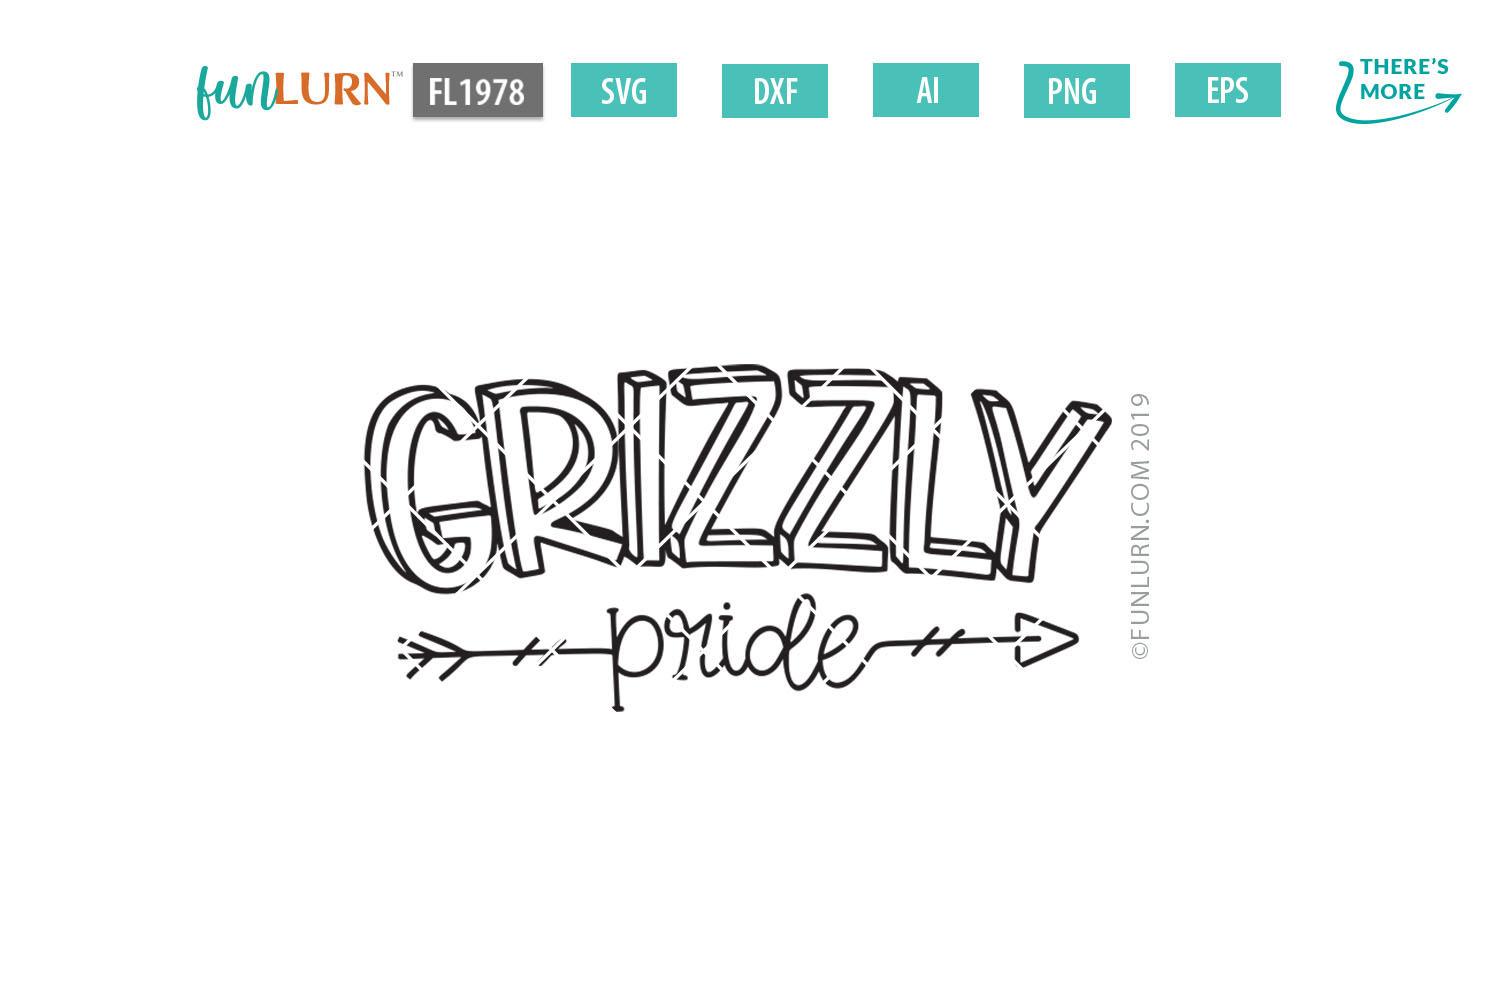 Grizzly Pride Team SVG Cut File example image 2